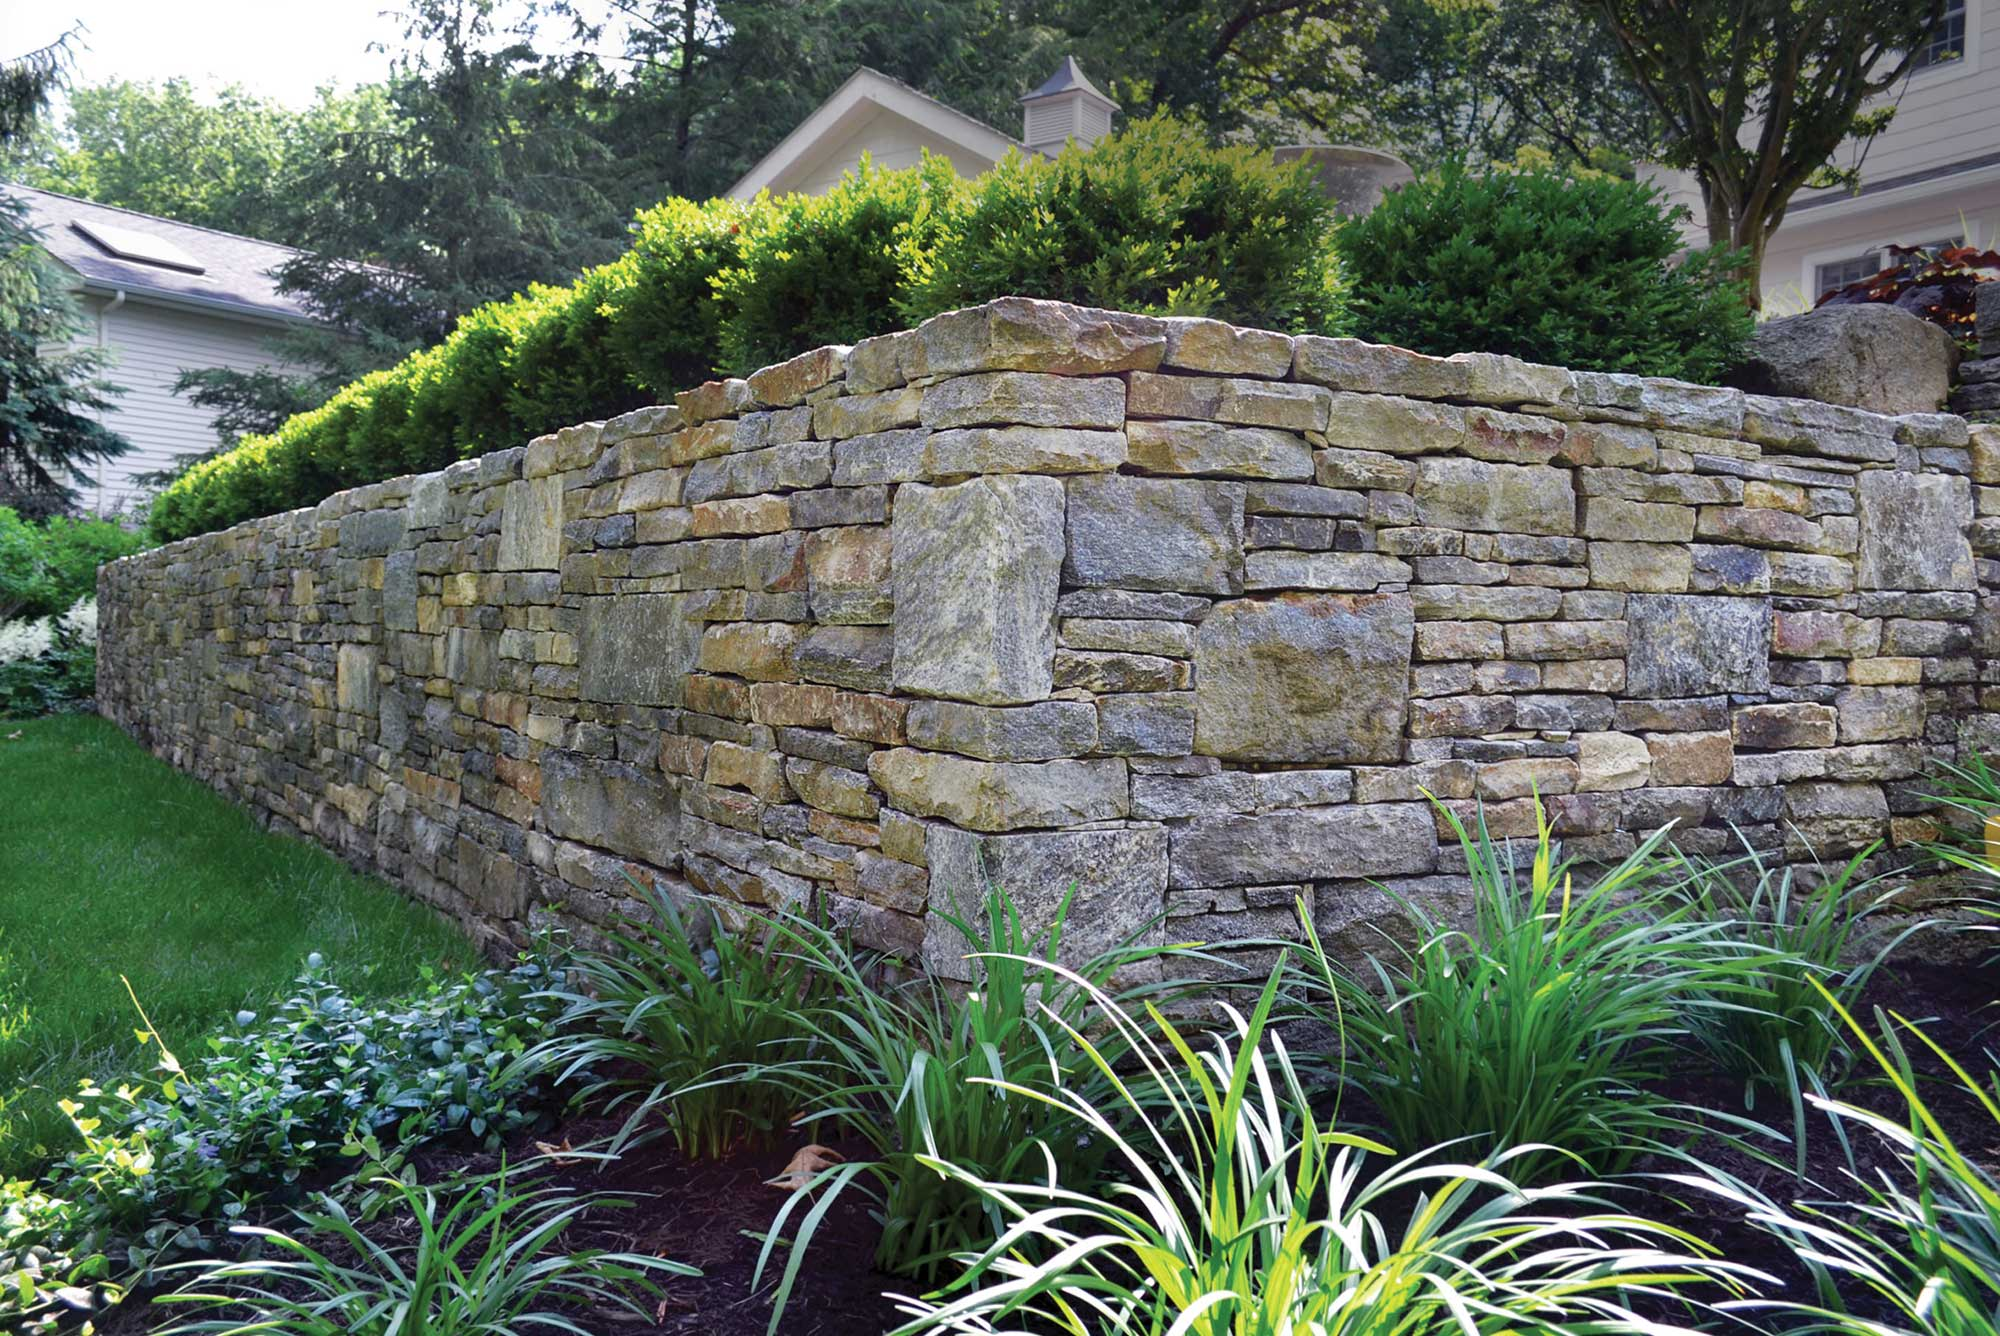 Corner of tall retaining wall with bushes on top and landscaped garden in front